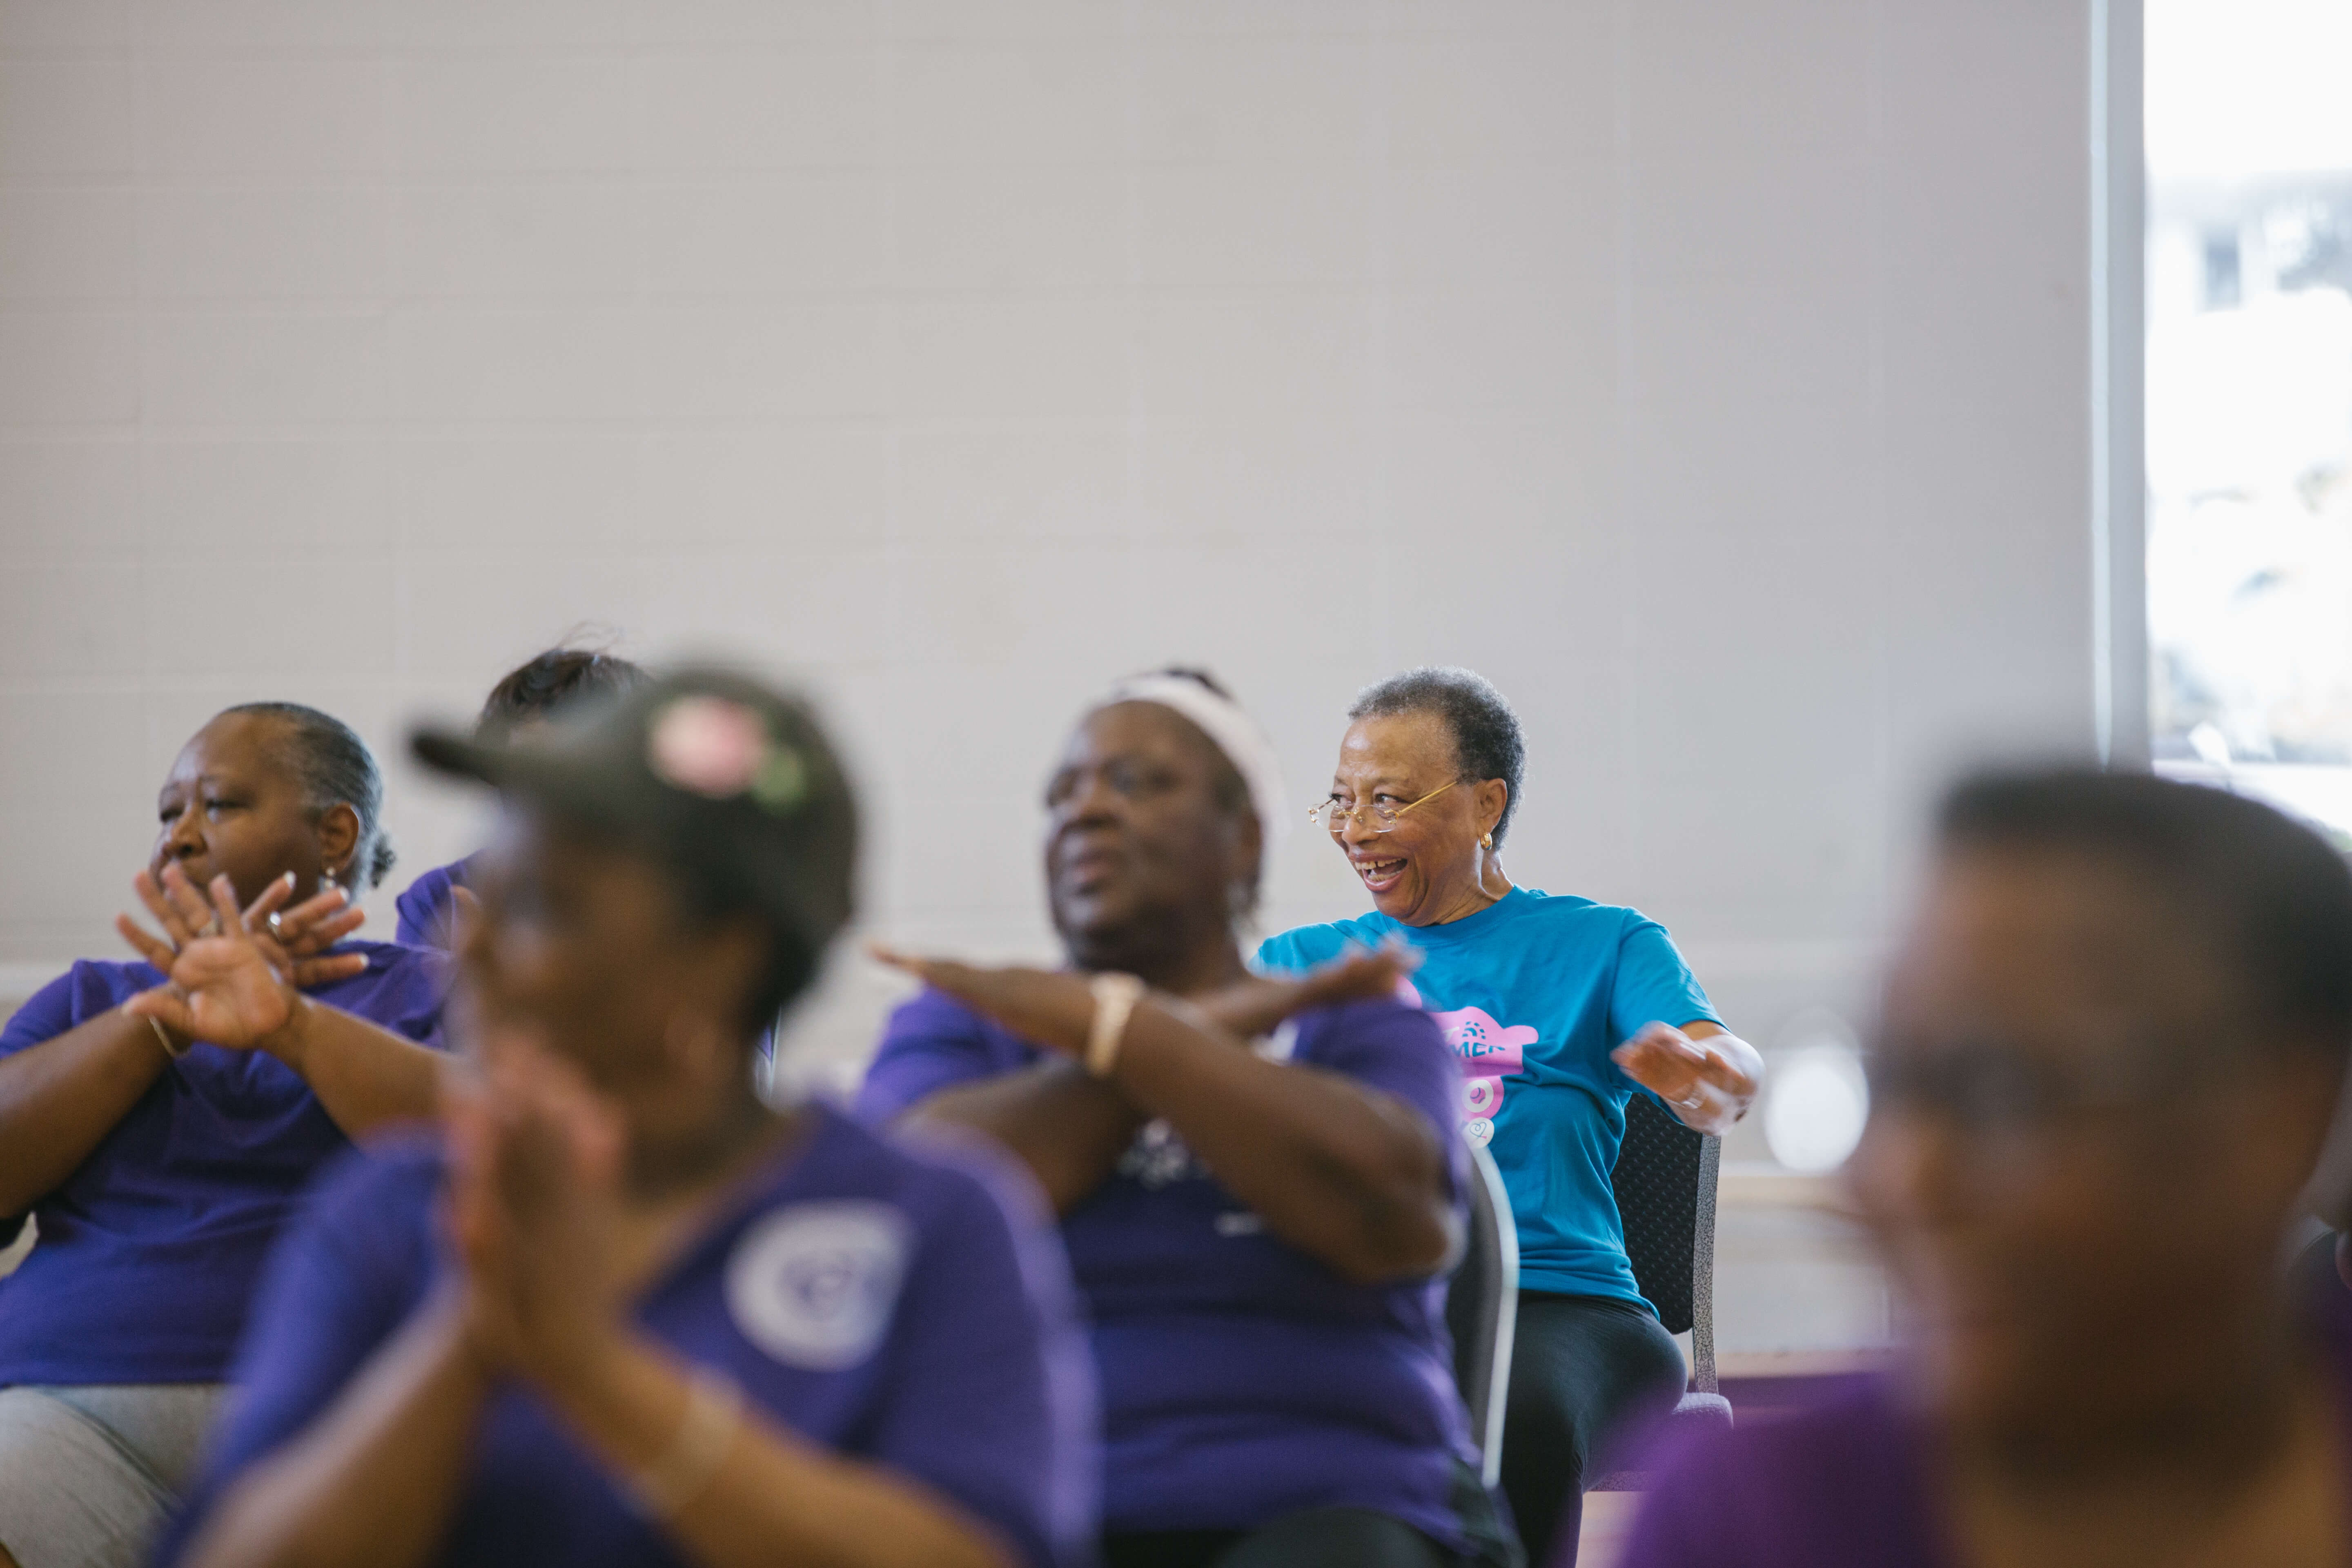 Margaret Jefferson participates in an exercise class. (Photo courtesy of the University of Houston)